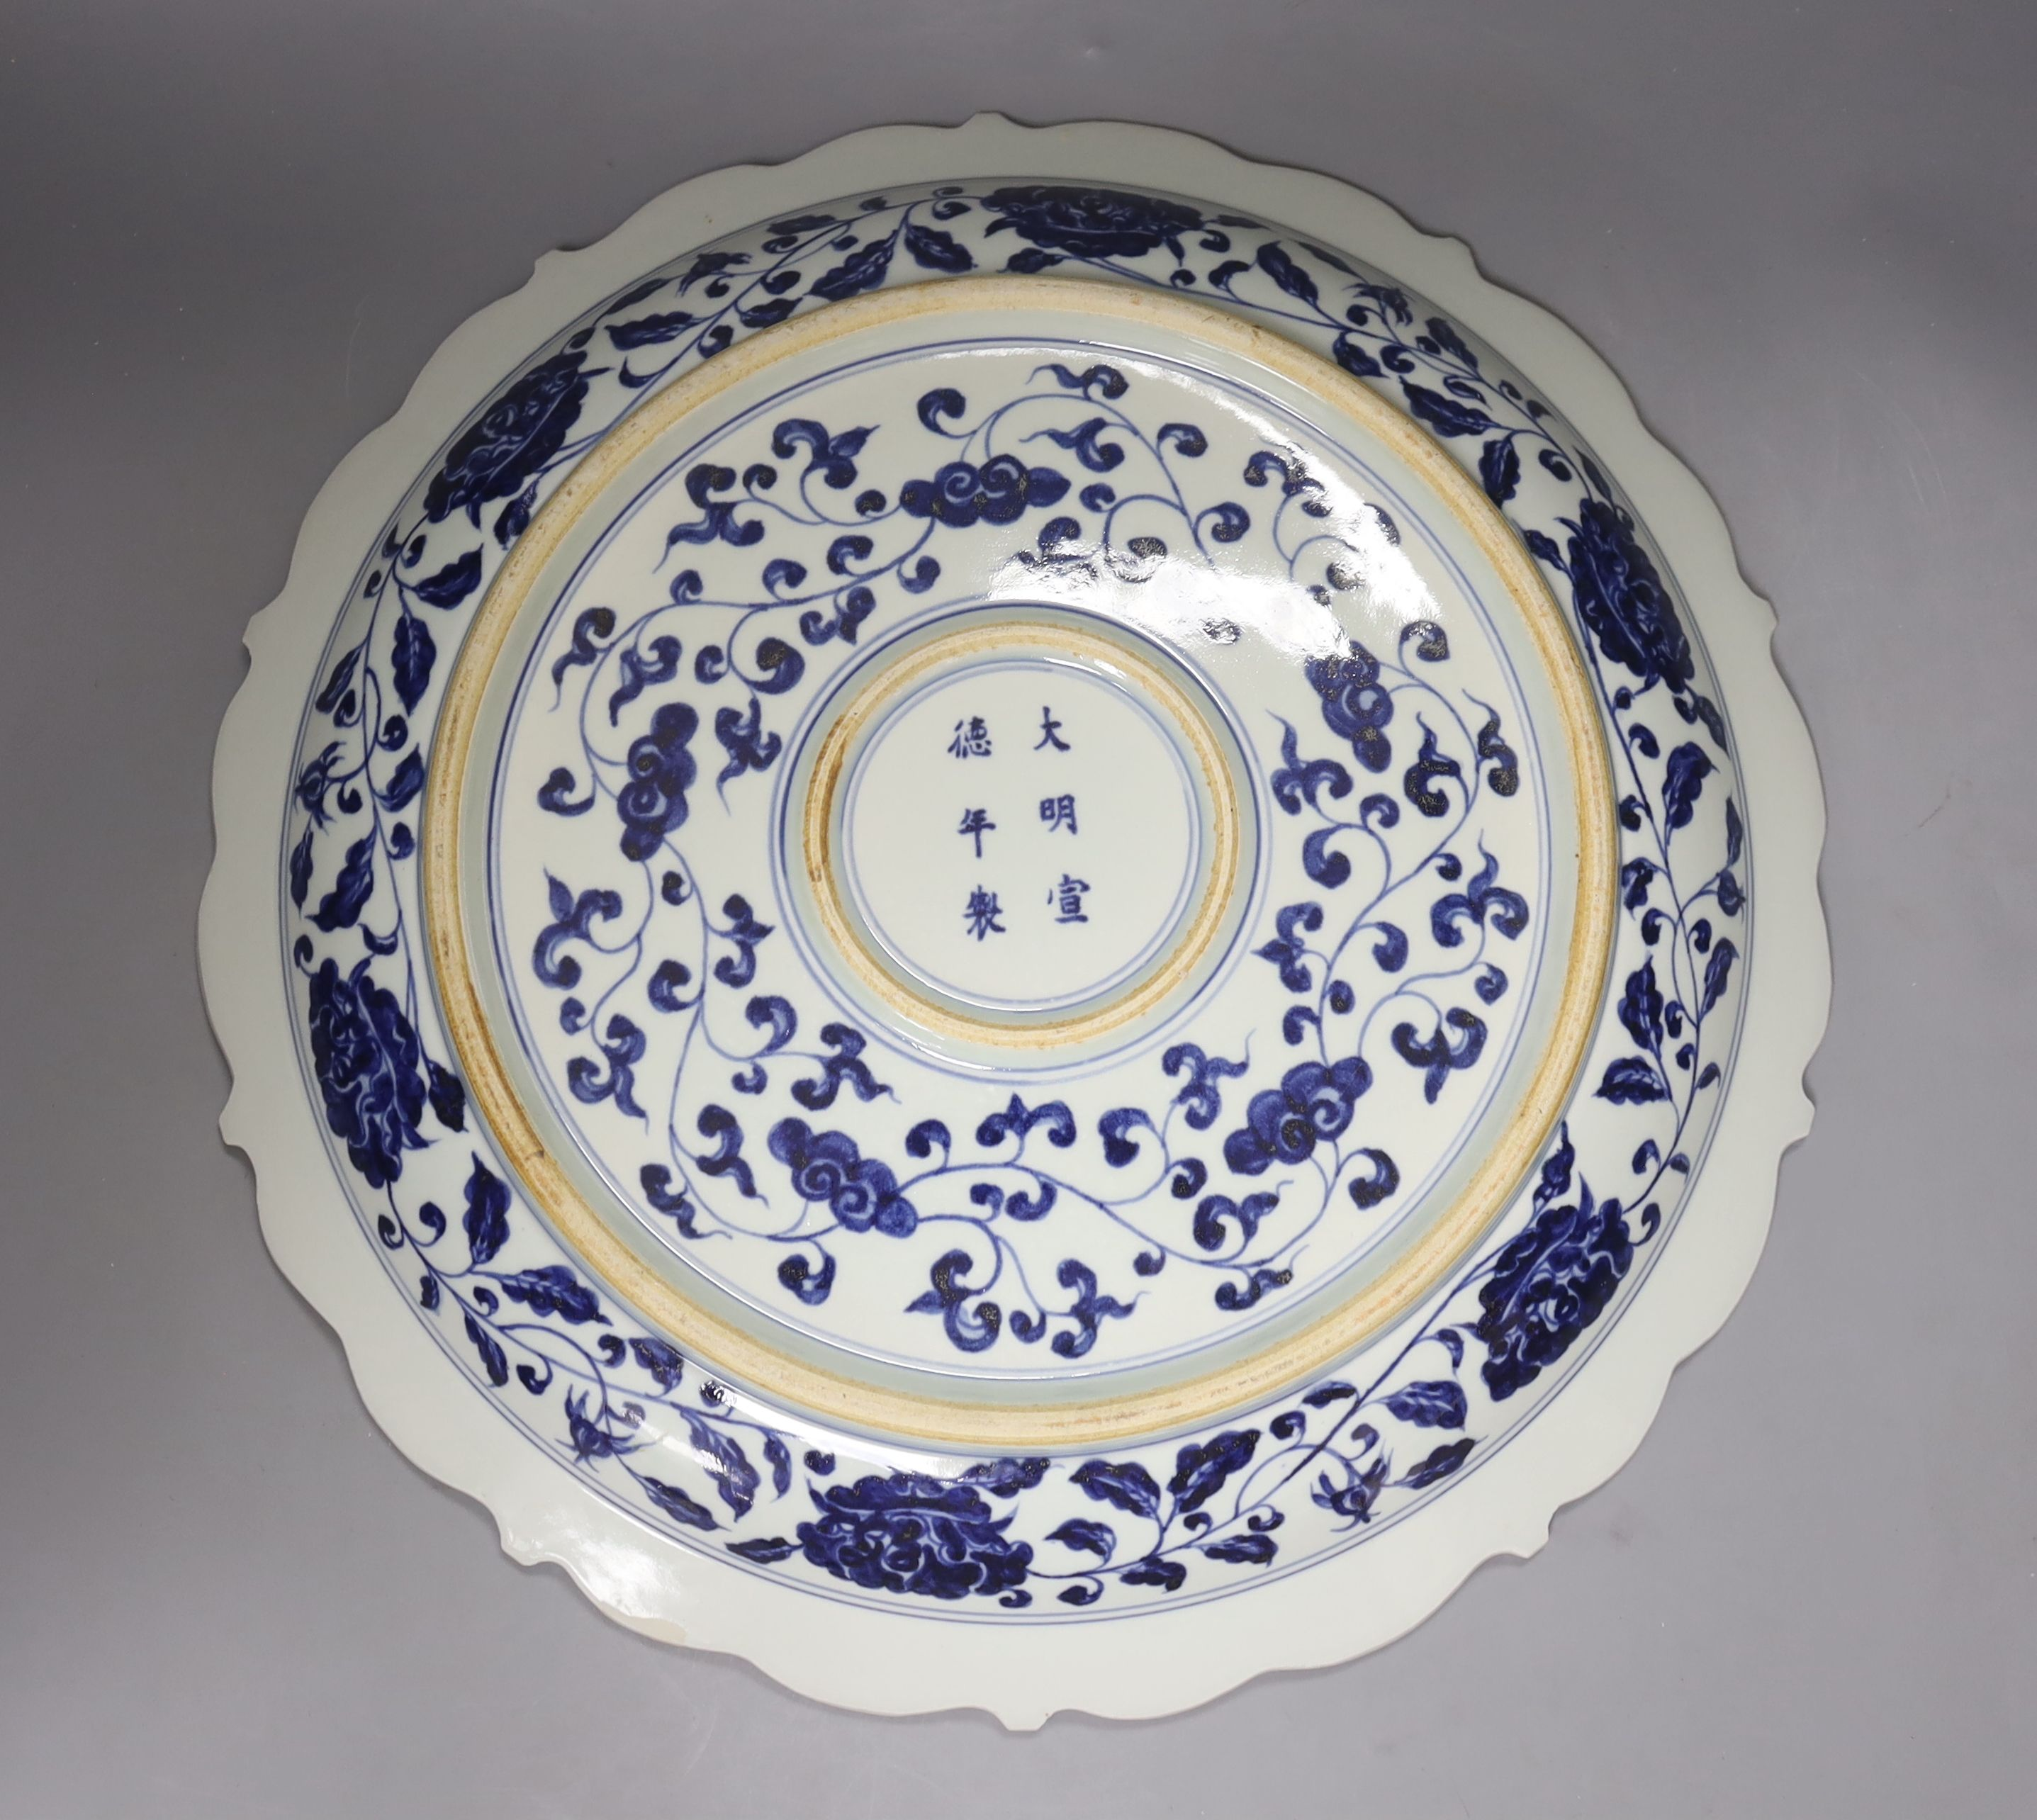 A Chinese blue and white Ming style dragon and phoenix dish, diameter 40cm - Image 3 of 3